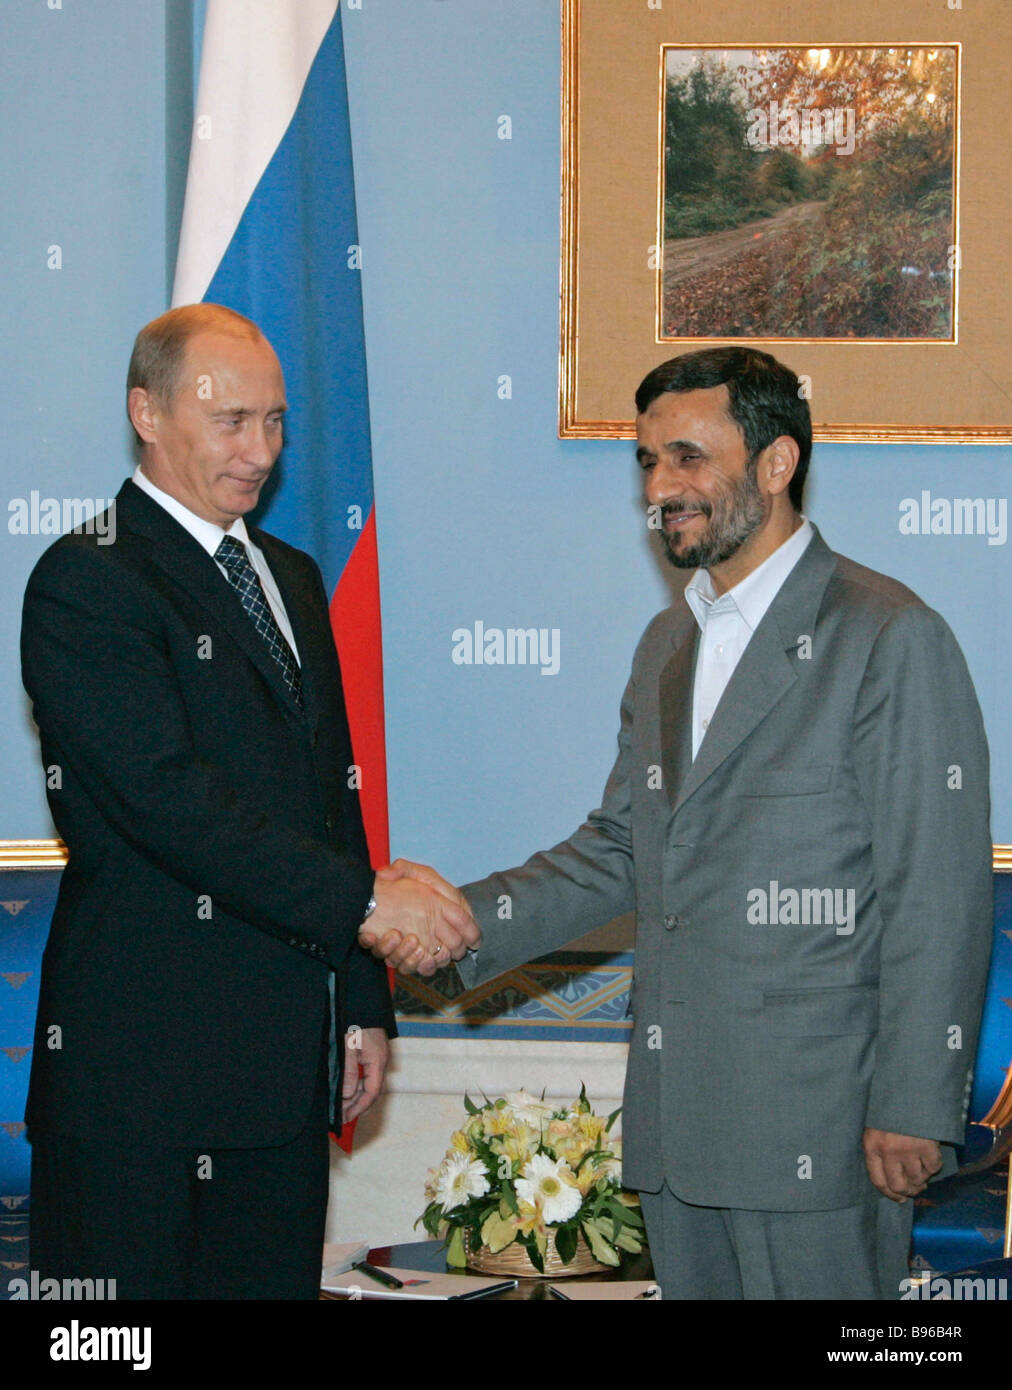 From left to right russian president vladimir putin and iranian from left to right russian president vladimir putin and iranian president mahmoud ahmadinejad at a meeting in the sadabad kristyandbryce Images